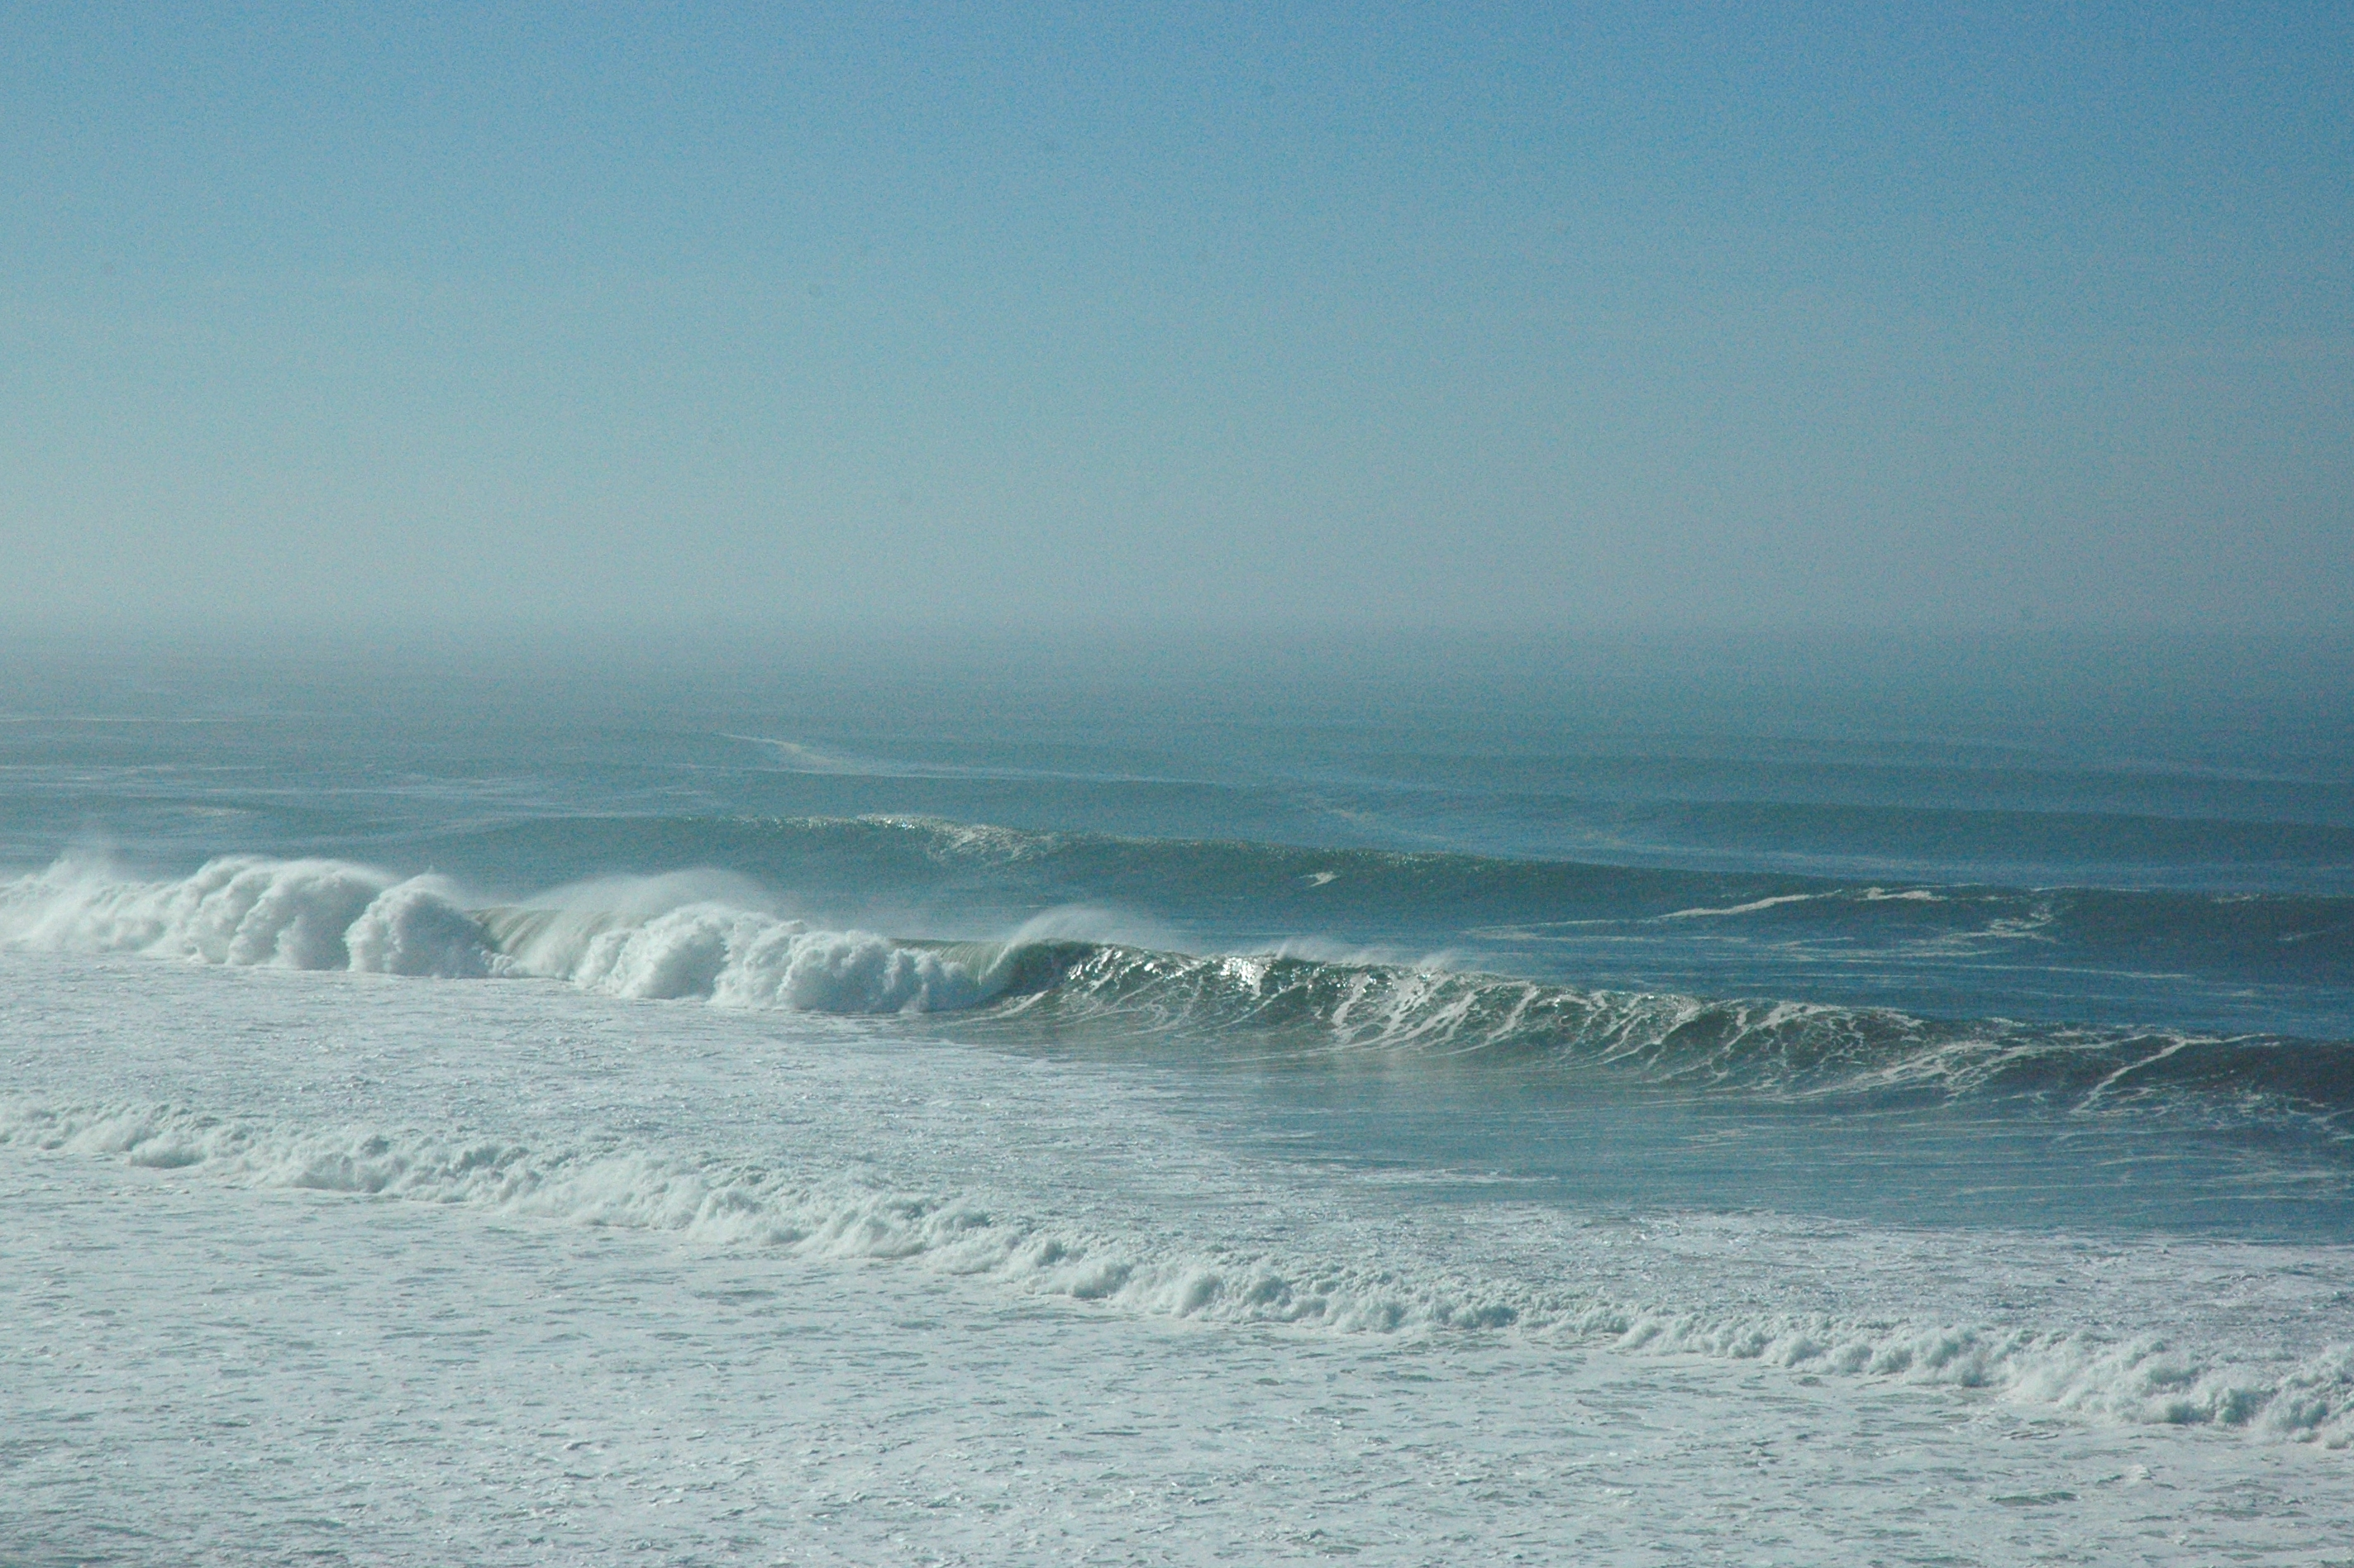 Oceans role highlighted as global warming regulator euractiv oceans role highlighted as global warming regulator sciox Images